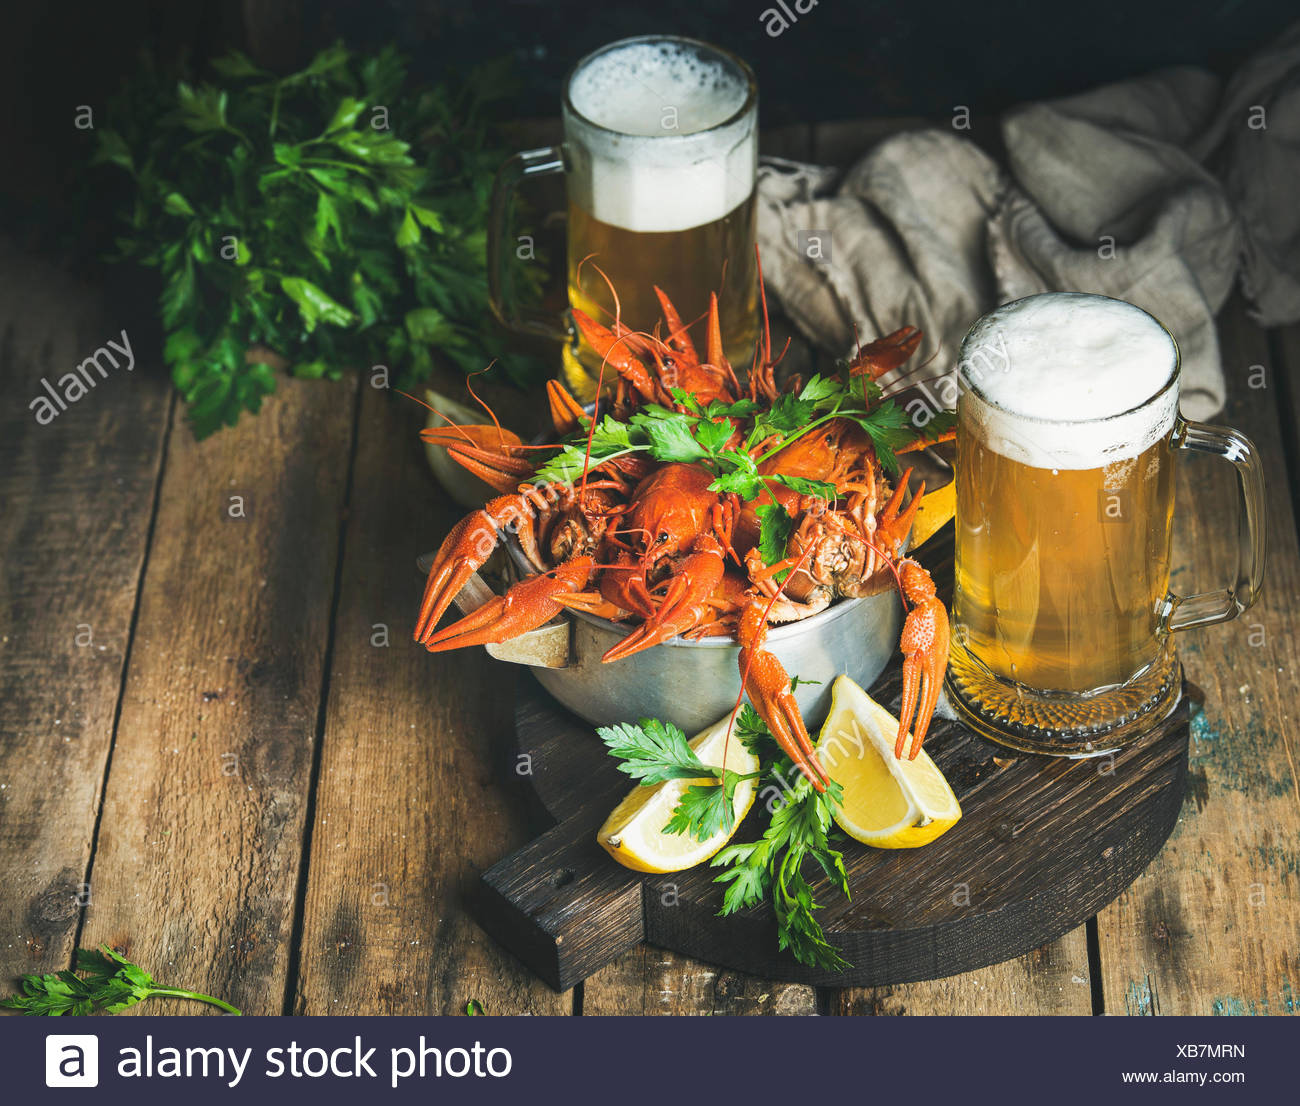 Two pints of wheat beer and boiled crayfish in metal pan served with with lemon and parsley on dark round serving board over rus - Stock Image